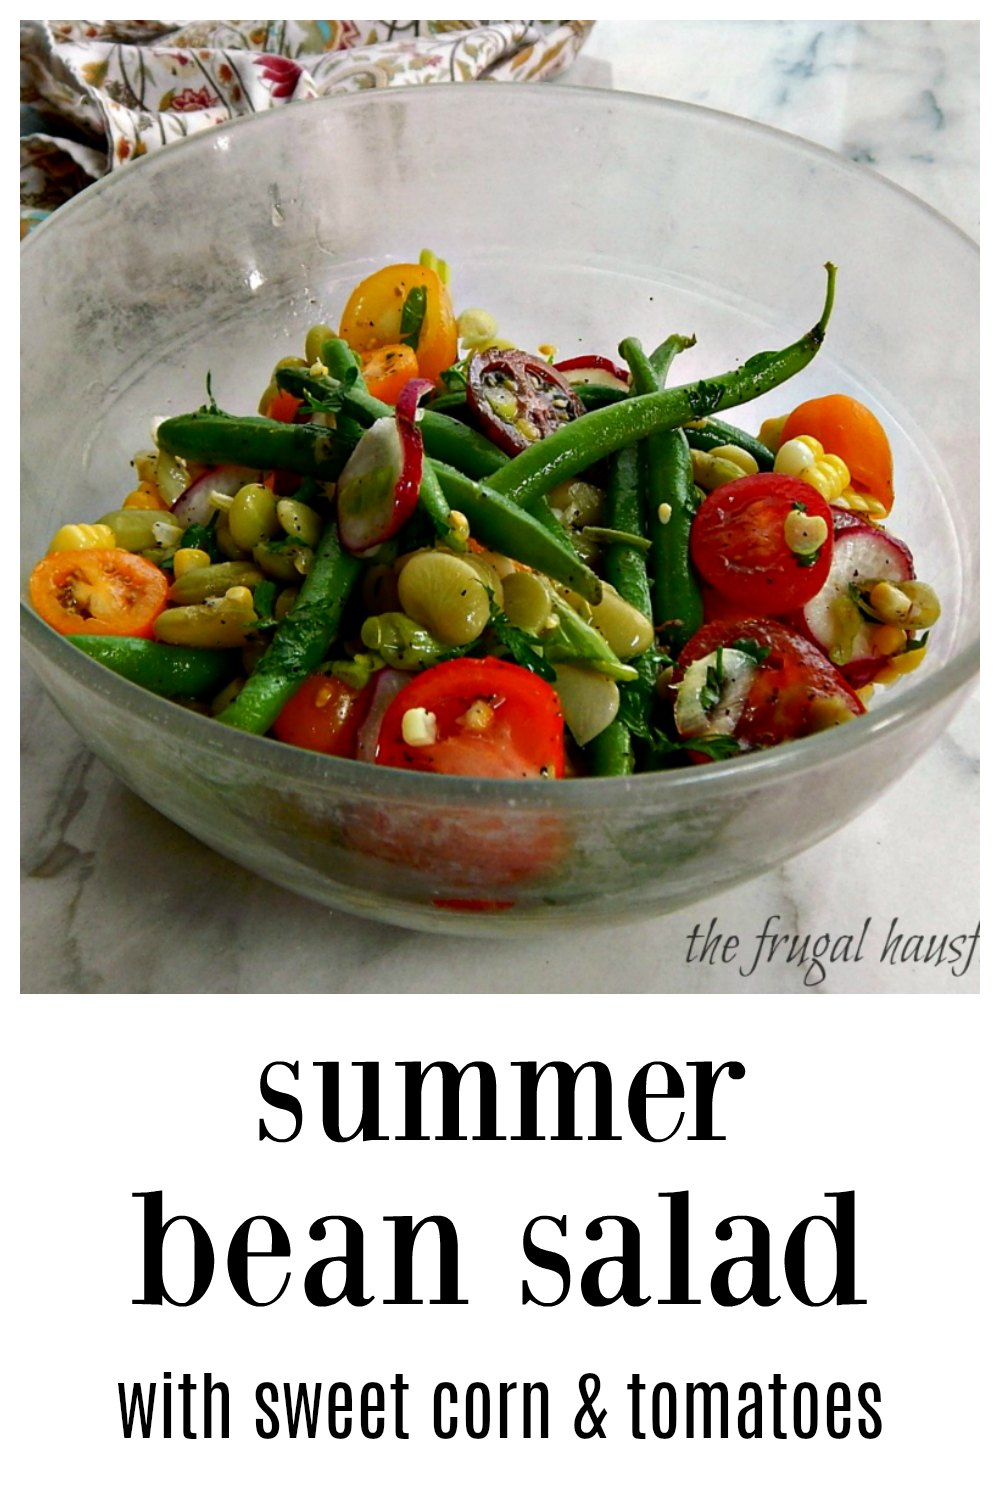 Summer Bean Salad with Corn & Tomatoes